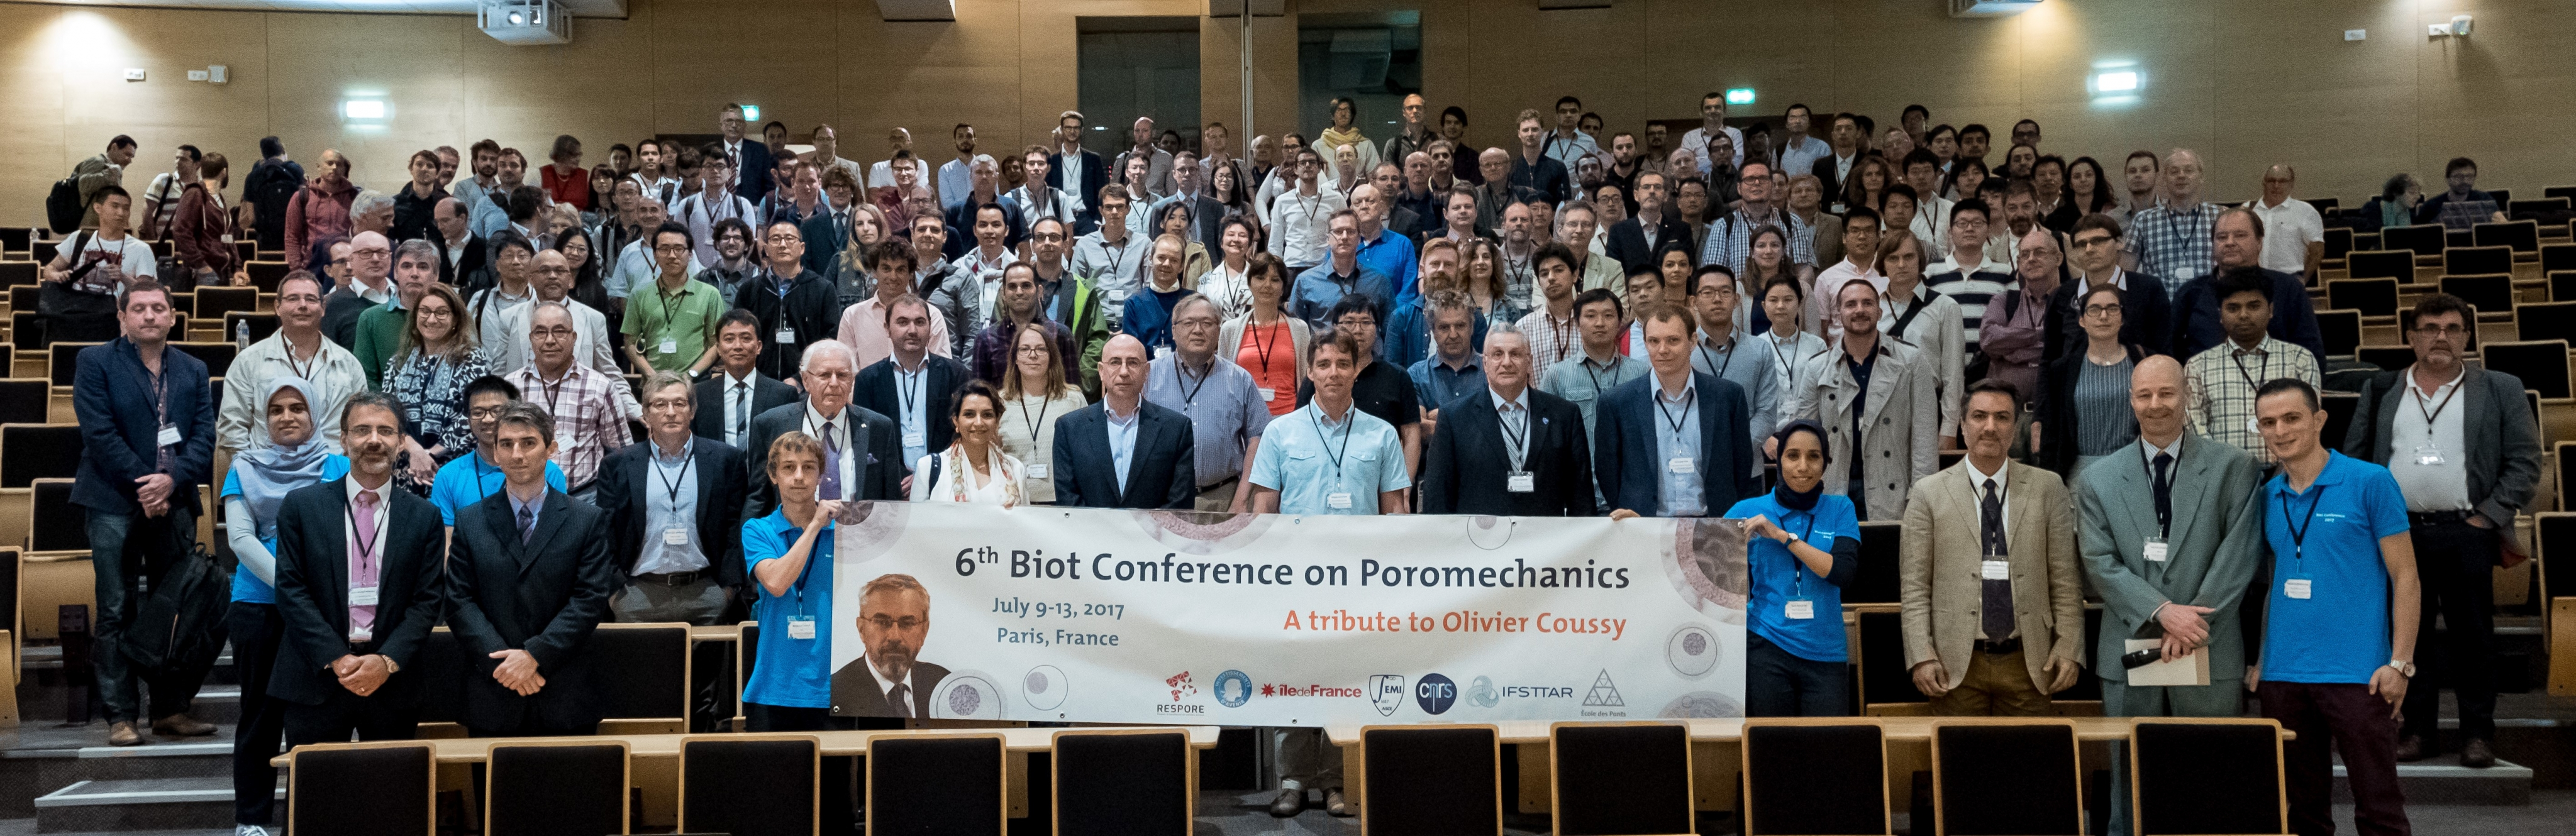 Biot conference